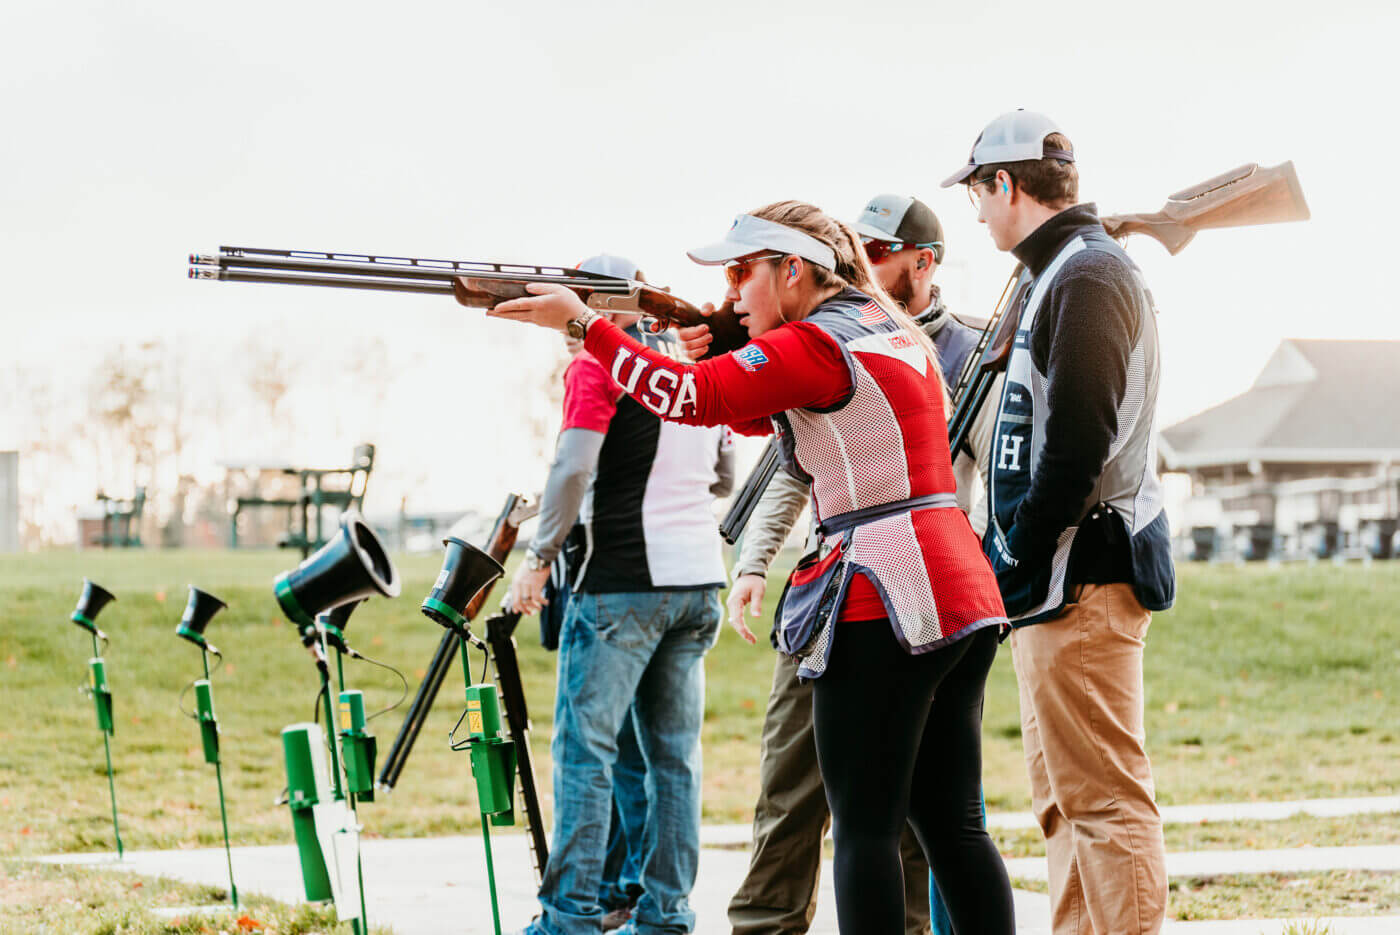 People in shotgun competition team at Hillsdale College